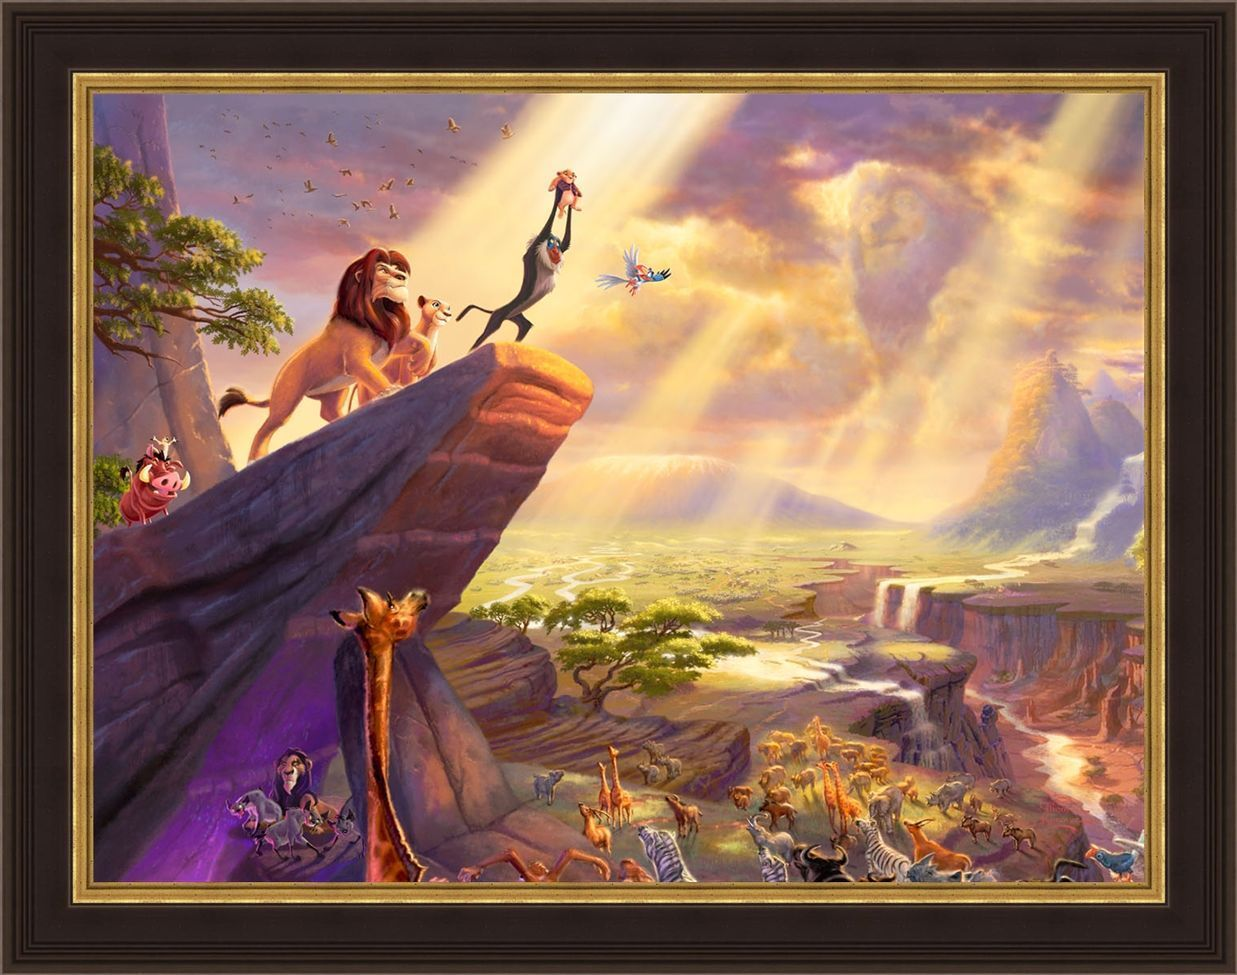 The Lion King Thomas Kinkade Framed Wall Art | Disney | Pinterest ...